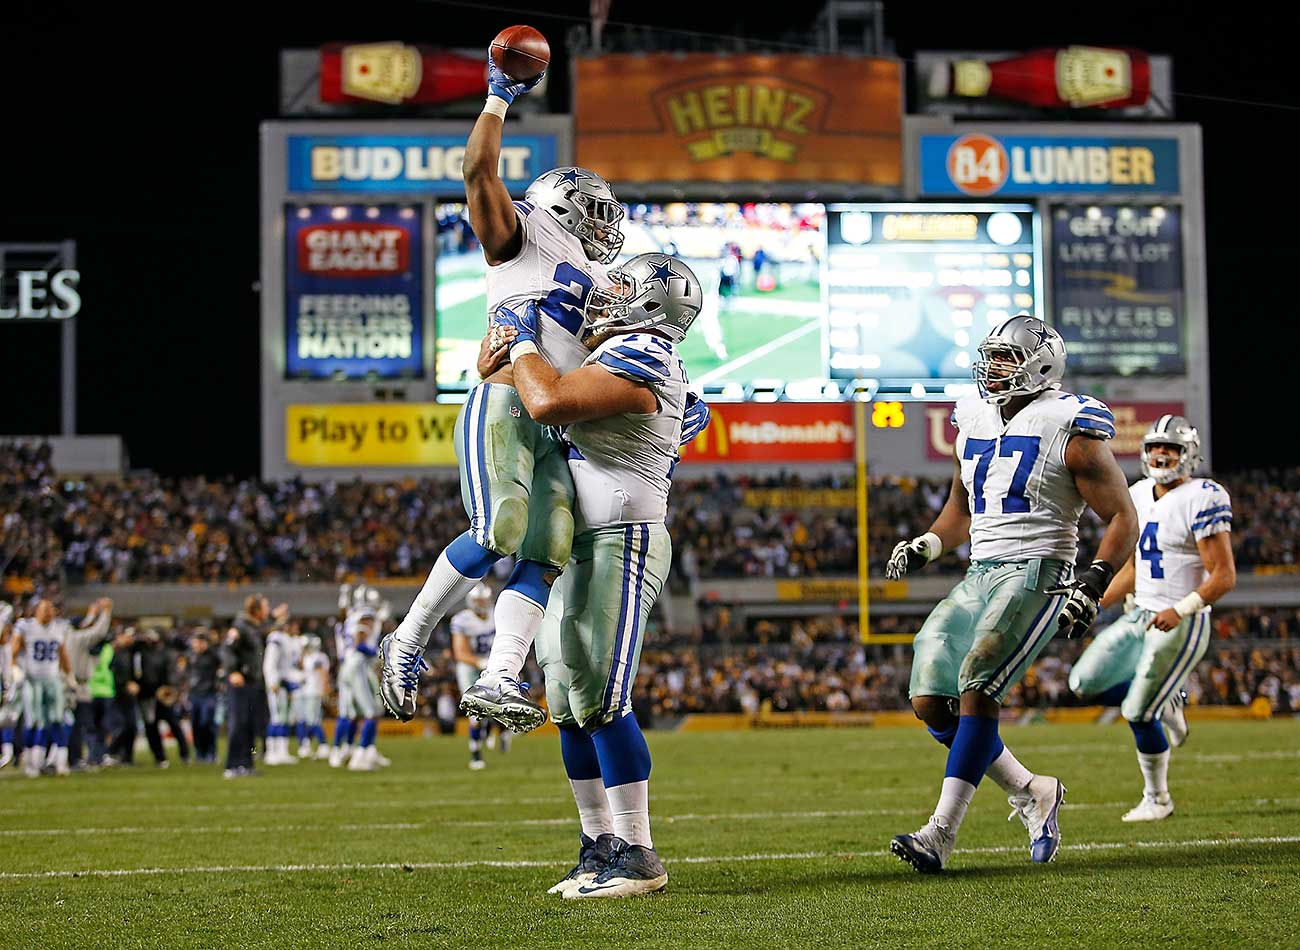 Led by rookie quarterback Dak Prescott and rookie running back Ezekiel Elliott, the 2016 Cowboys bounced back from losing their season opener against the New York Giants and rolled to a franchise record 10 consecutive wins.